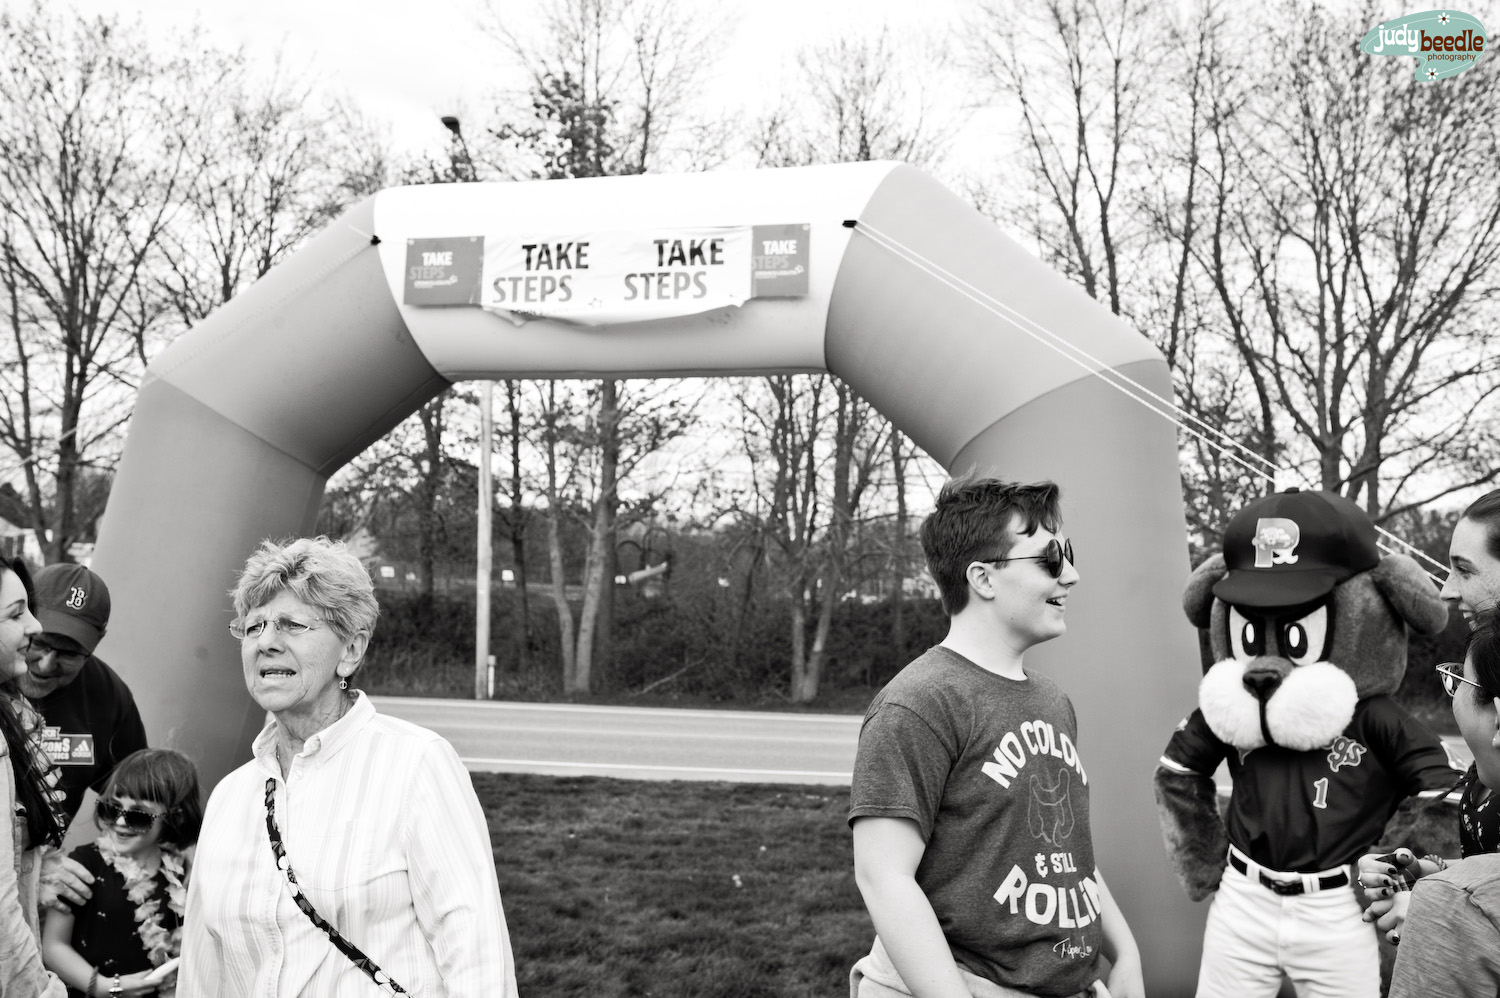 5/18. About to walk for Crohn's & Colitis. This image cracks me up because every face seems to lead you to another face doing another thing…